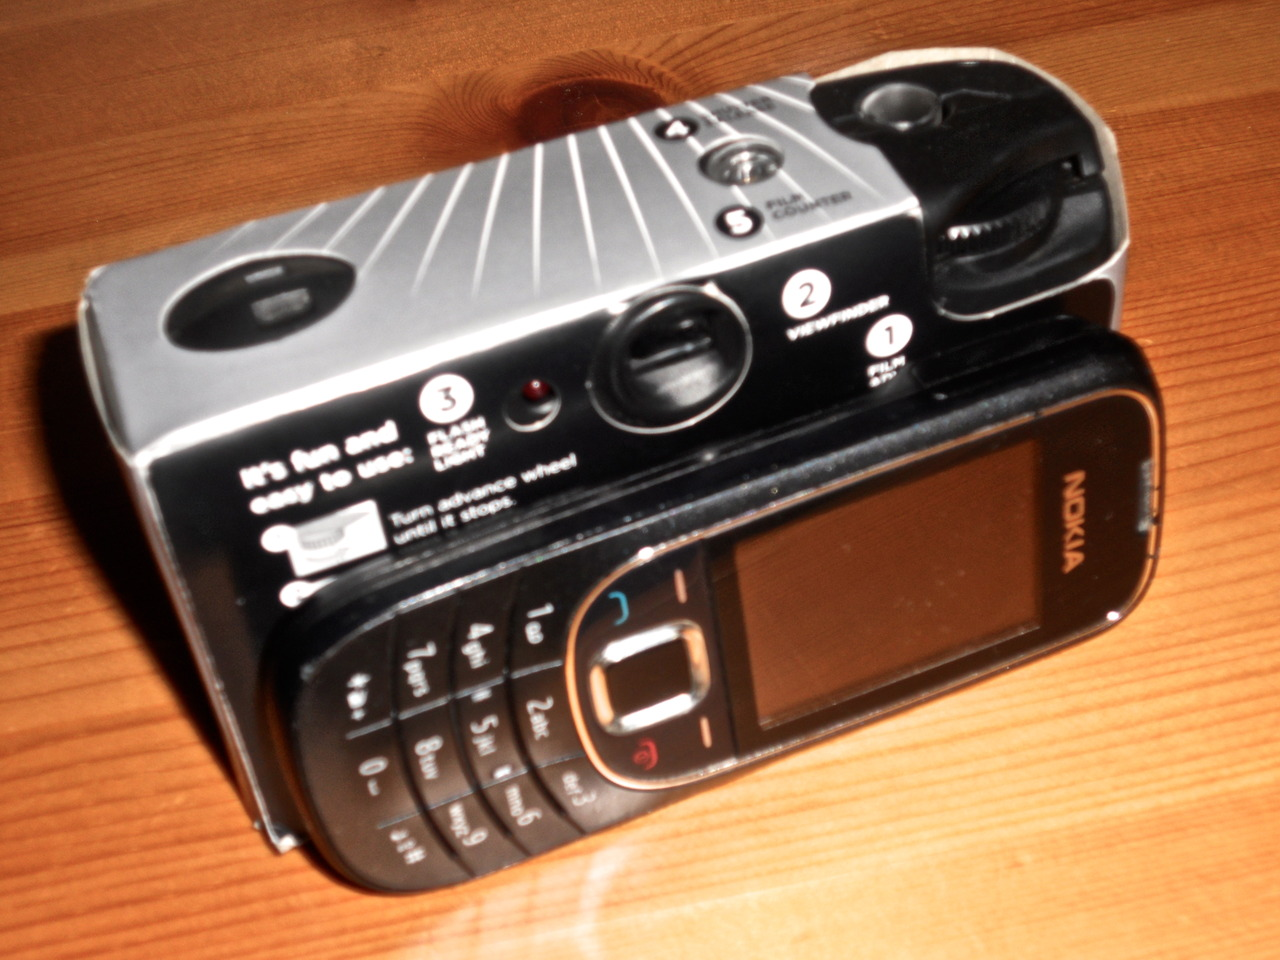 Best Camera Phones For Summer 2013